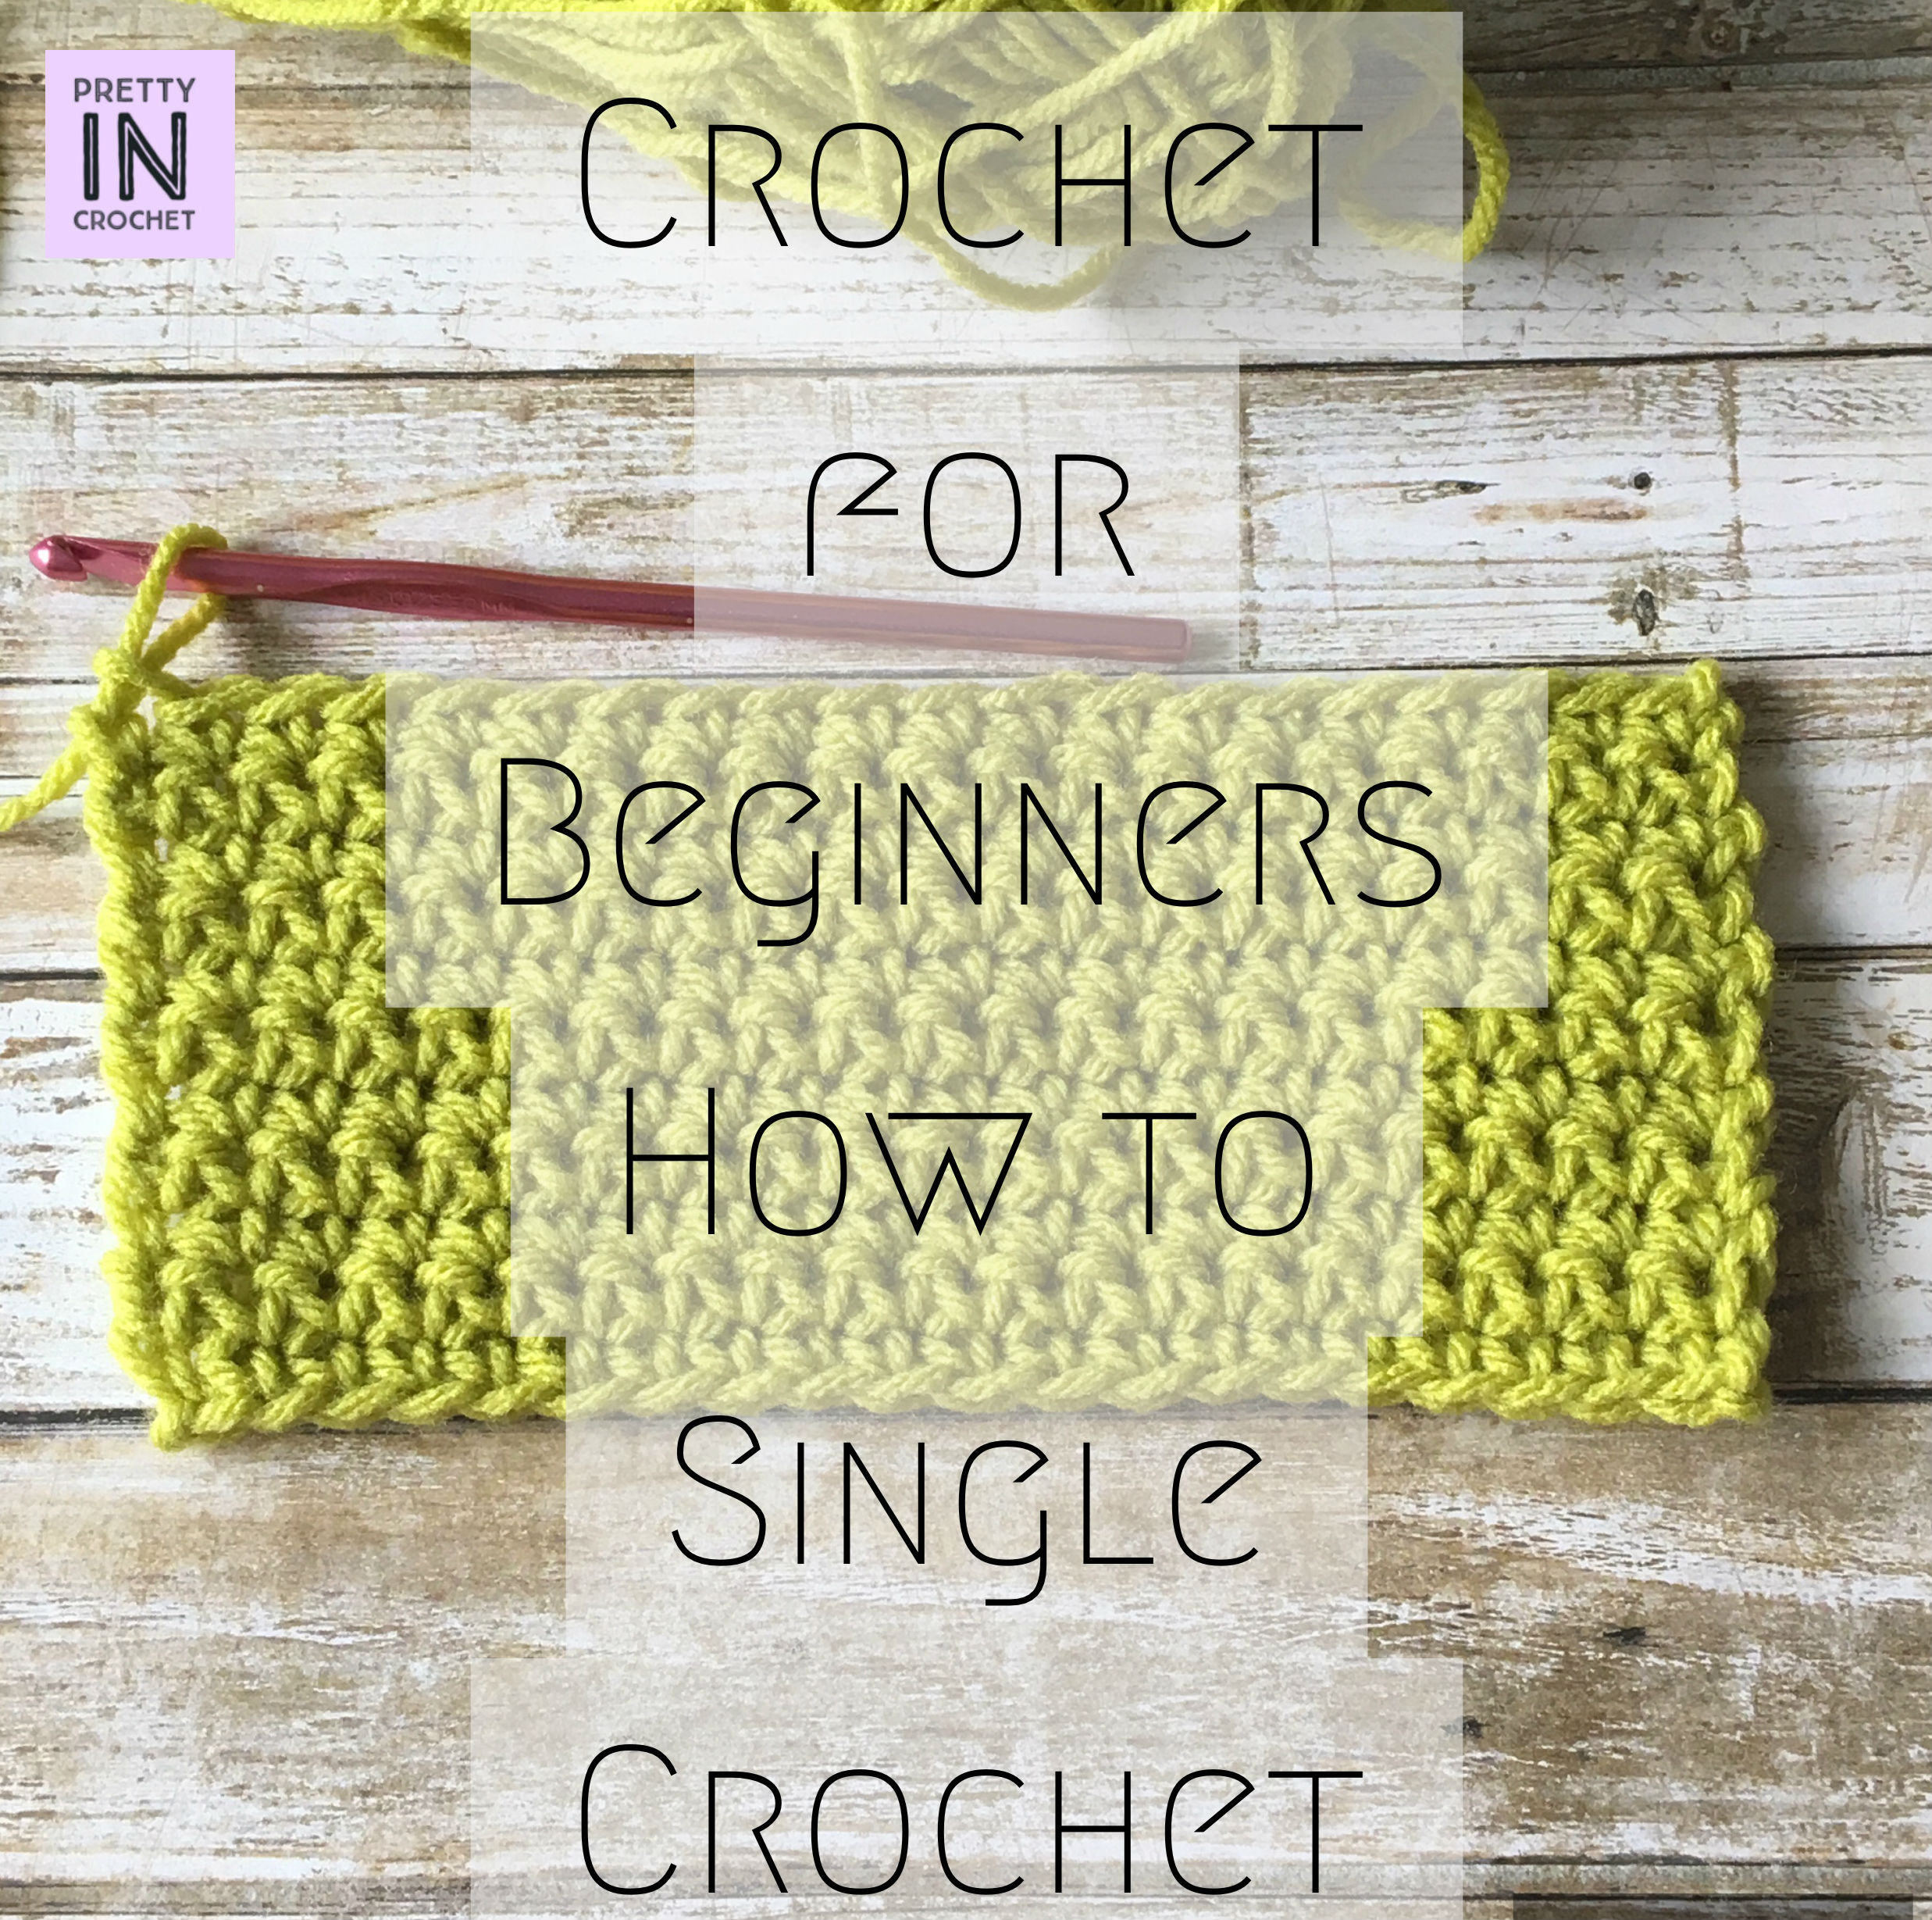 How to Crochet the Single Crochet